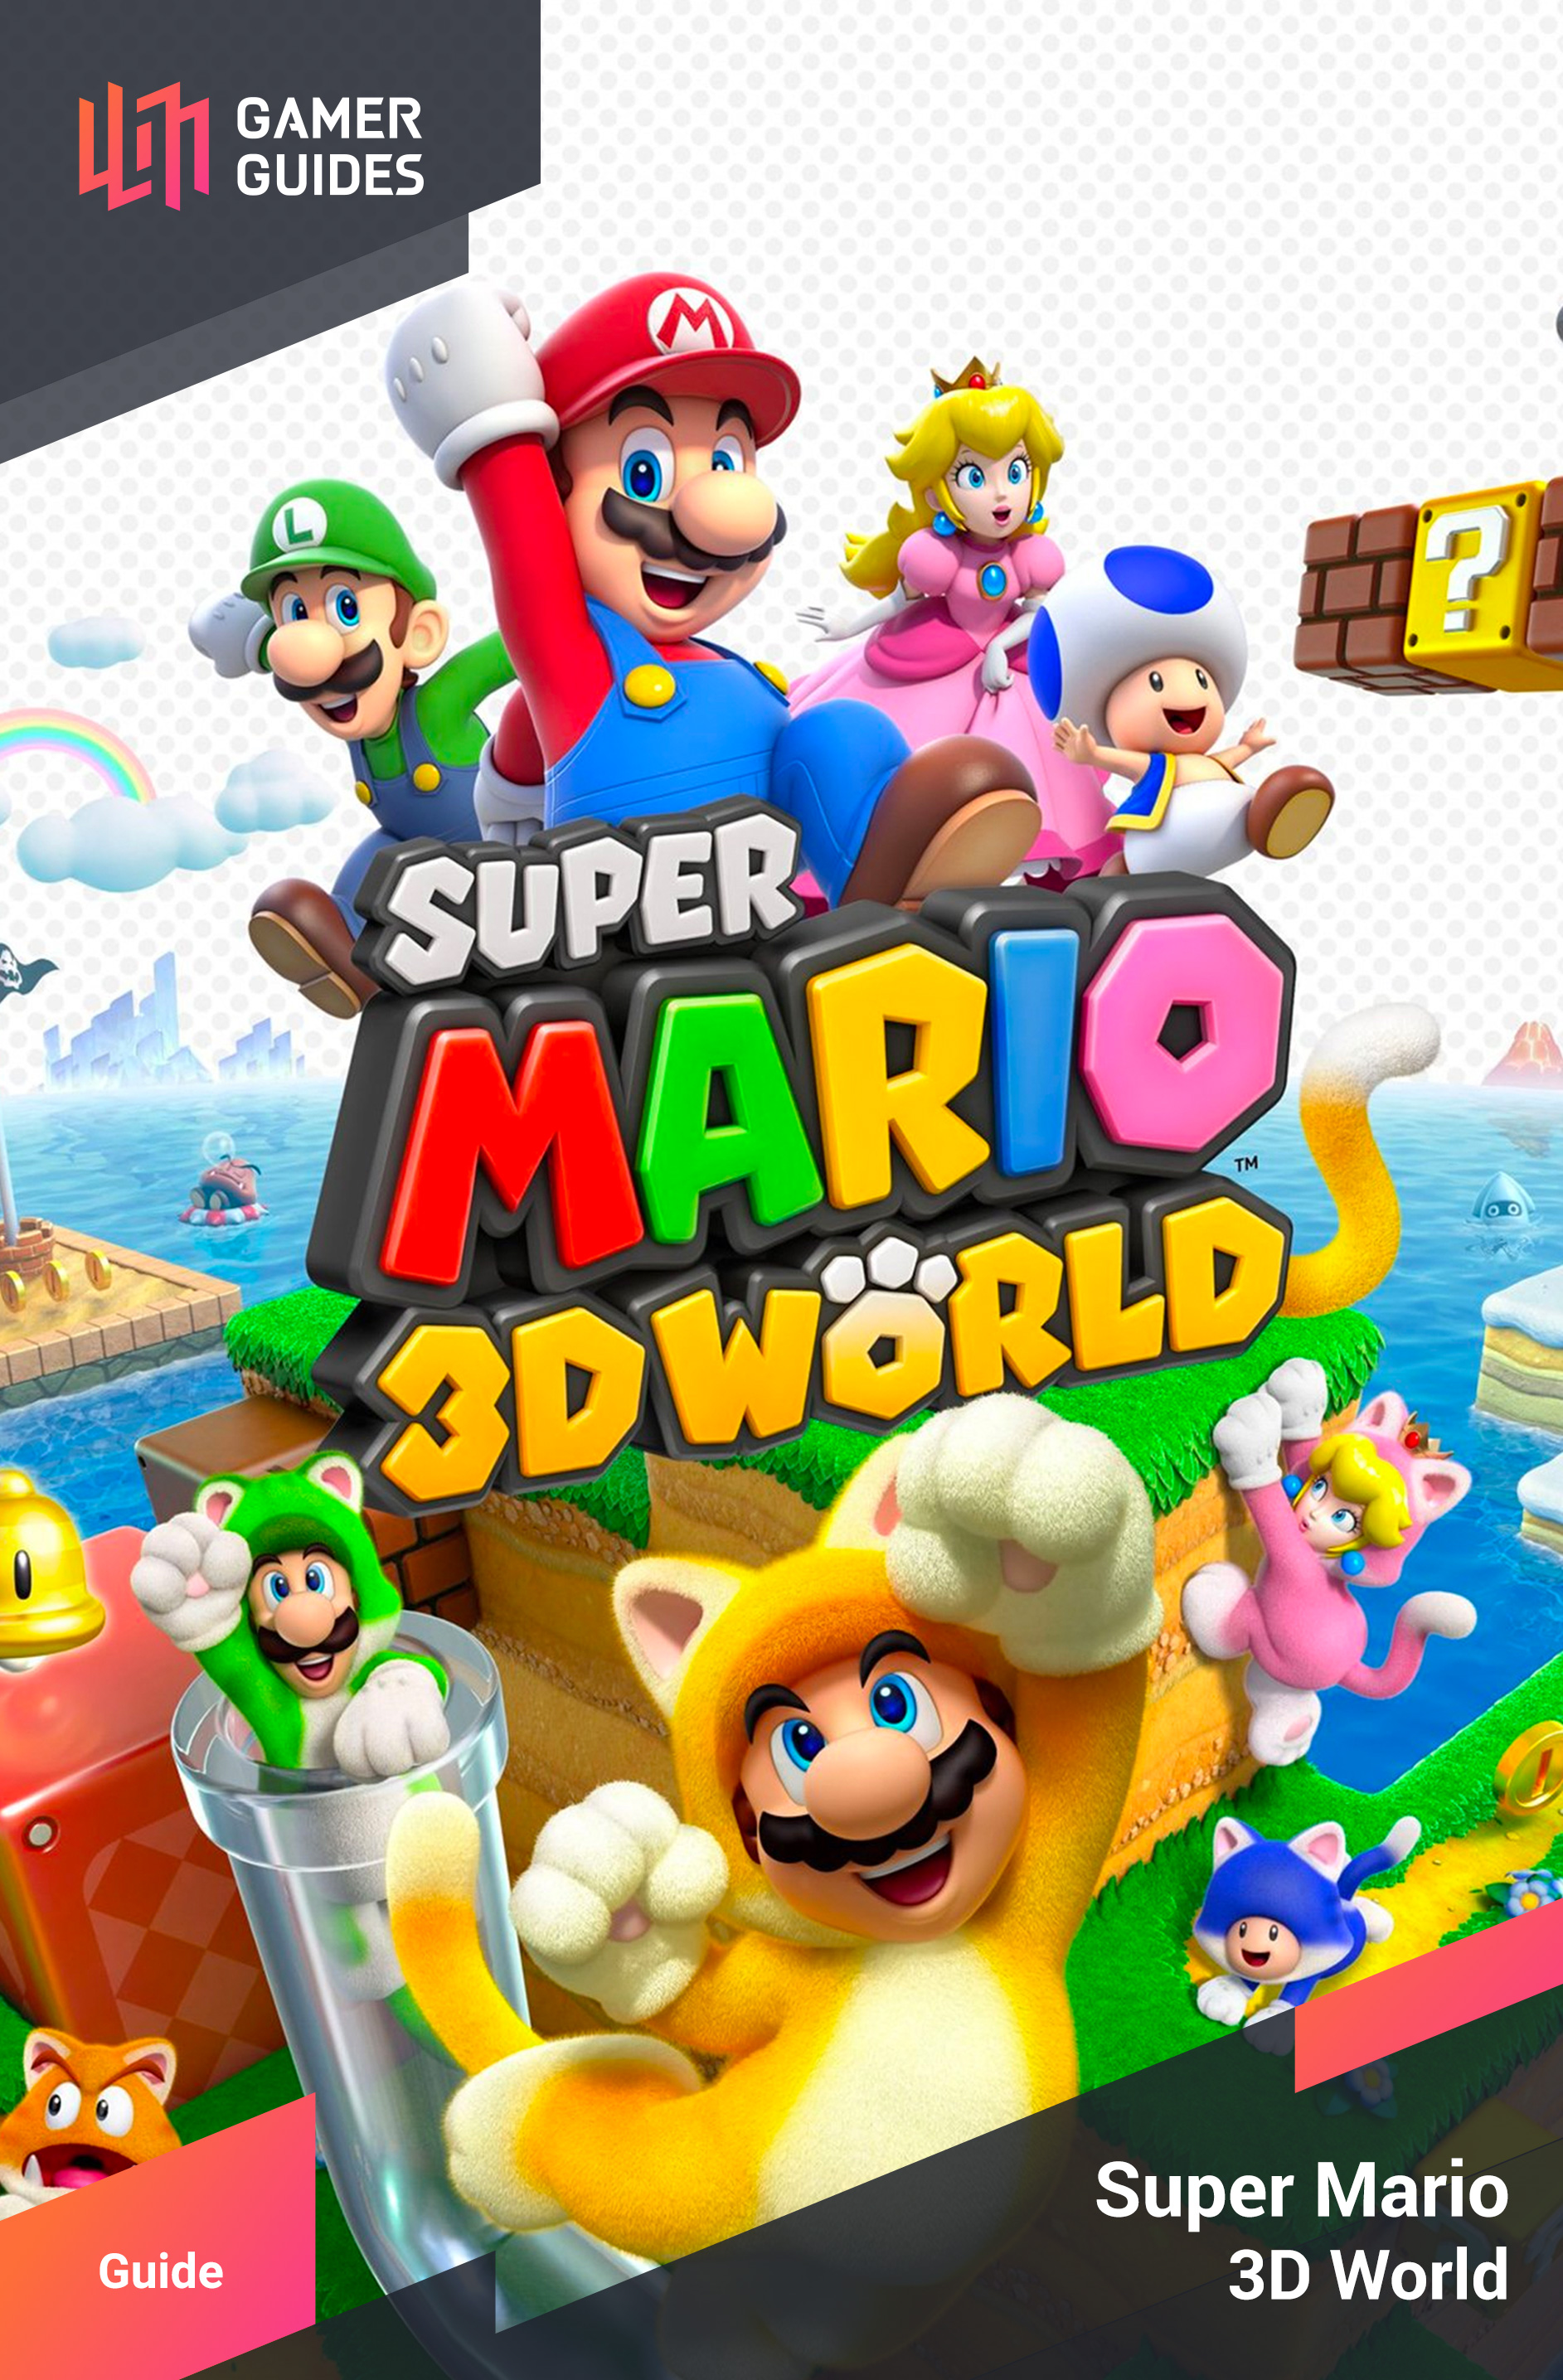 World Star 1 Rainbow Run Super Mario 3d World Gamer Guides